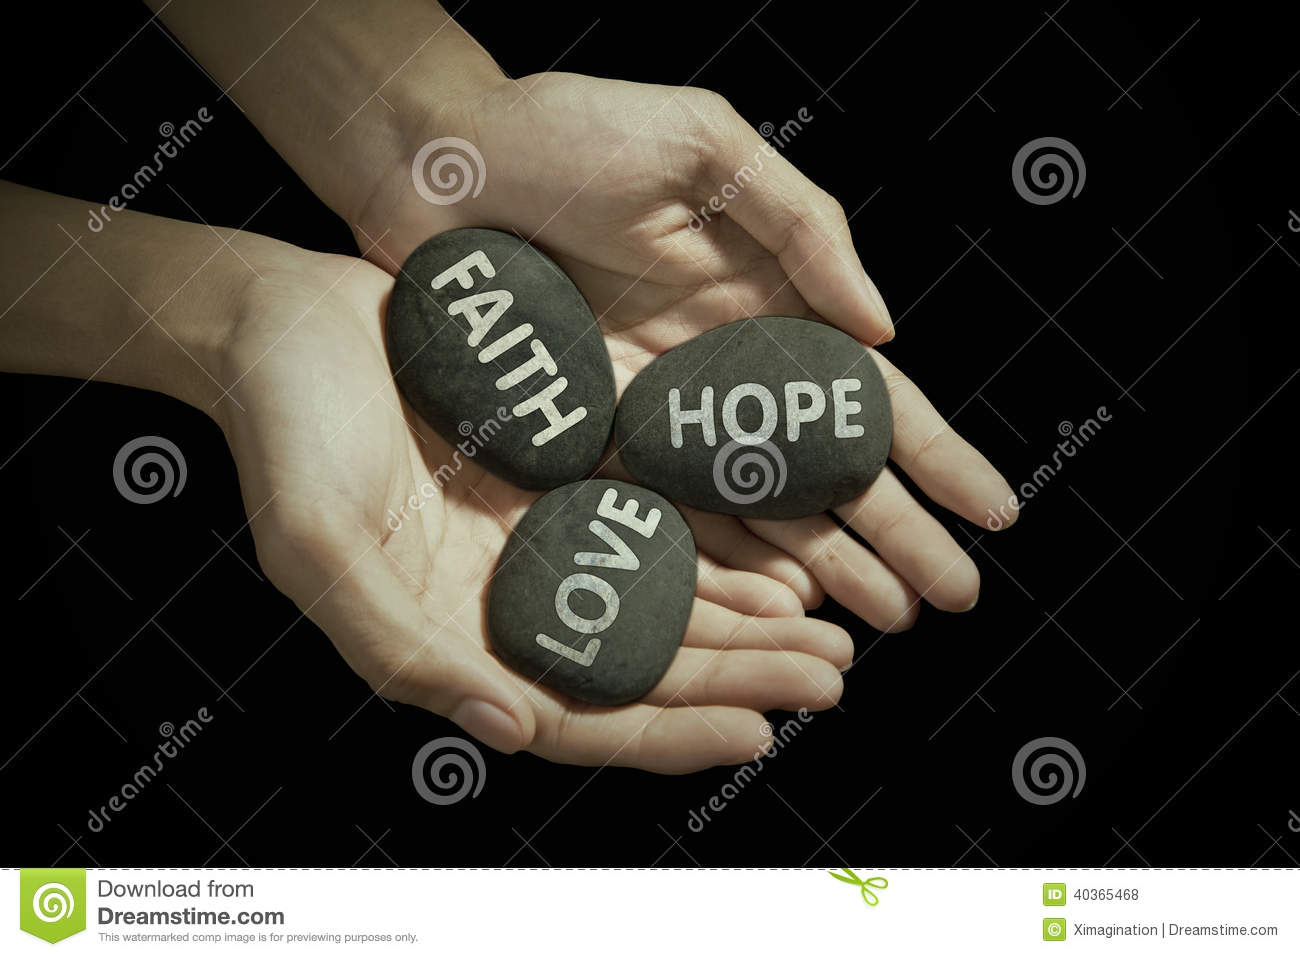 Hands Holding Religious Text Stock Photo - Image: 40365468